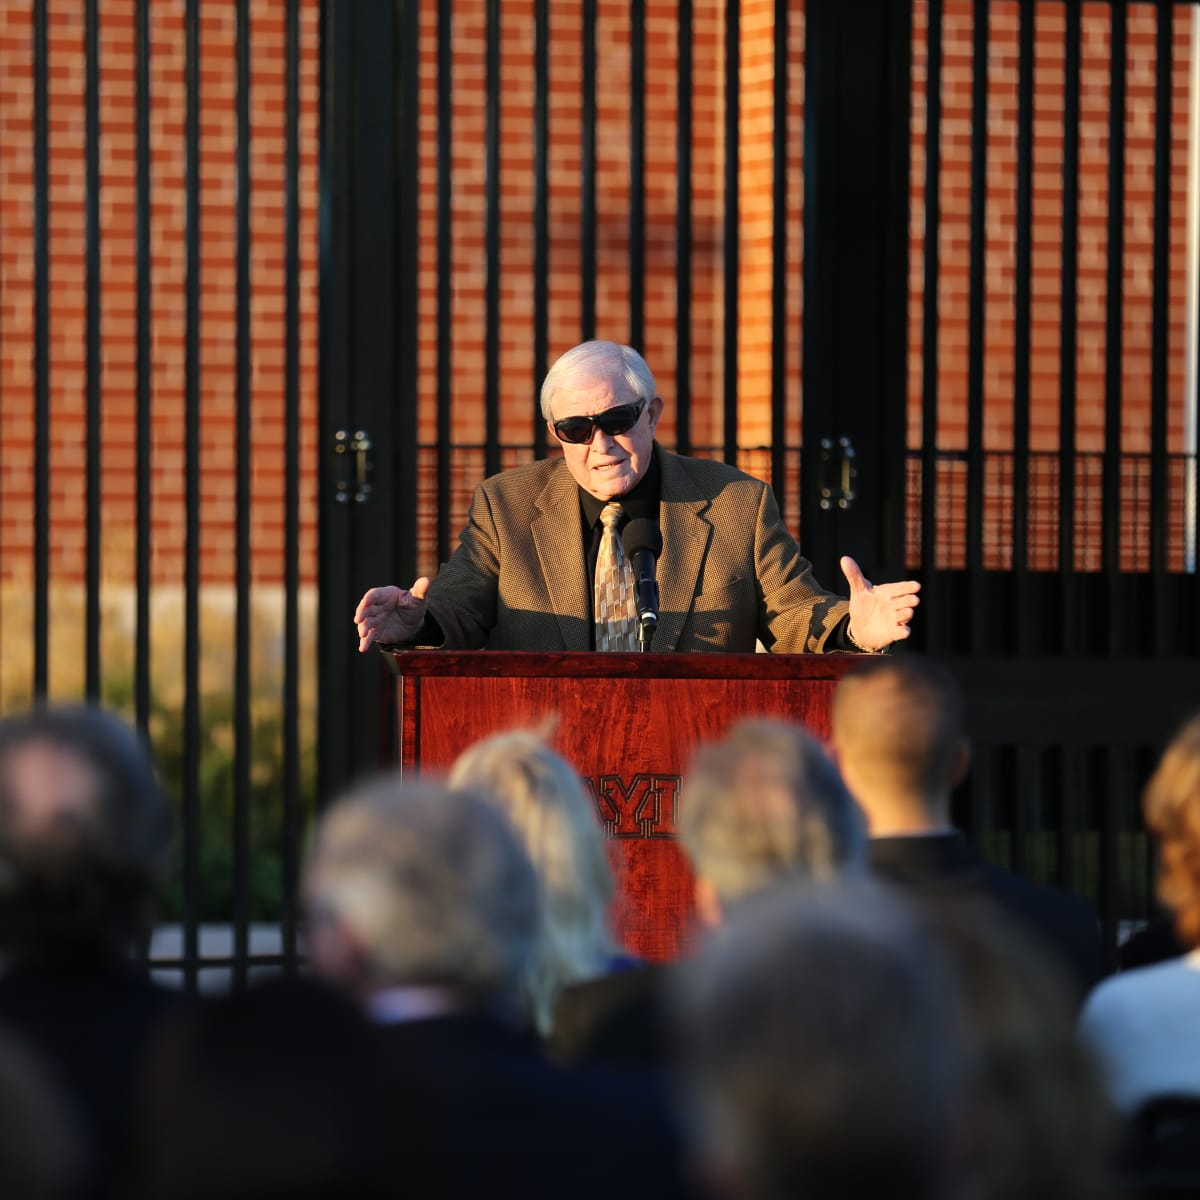 News, Shelby, John eddie Williams statue event, Nov. 2015, Grant Teaff